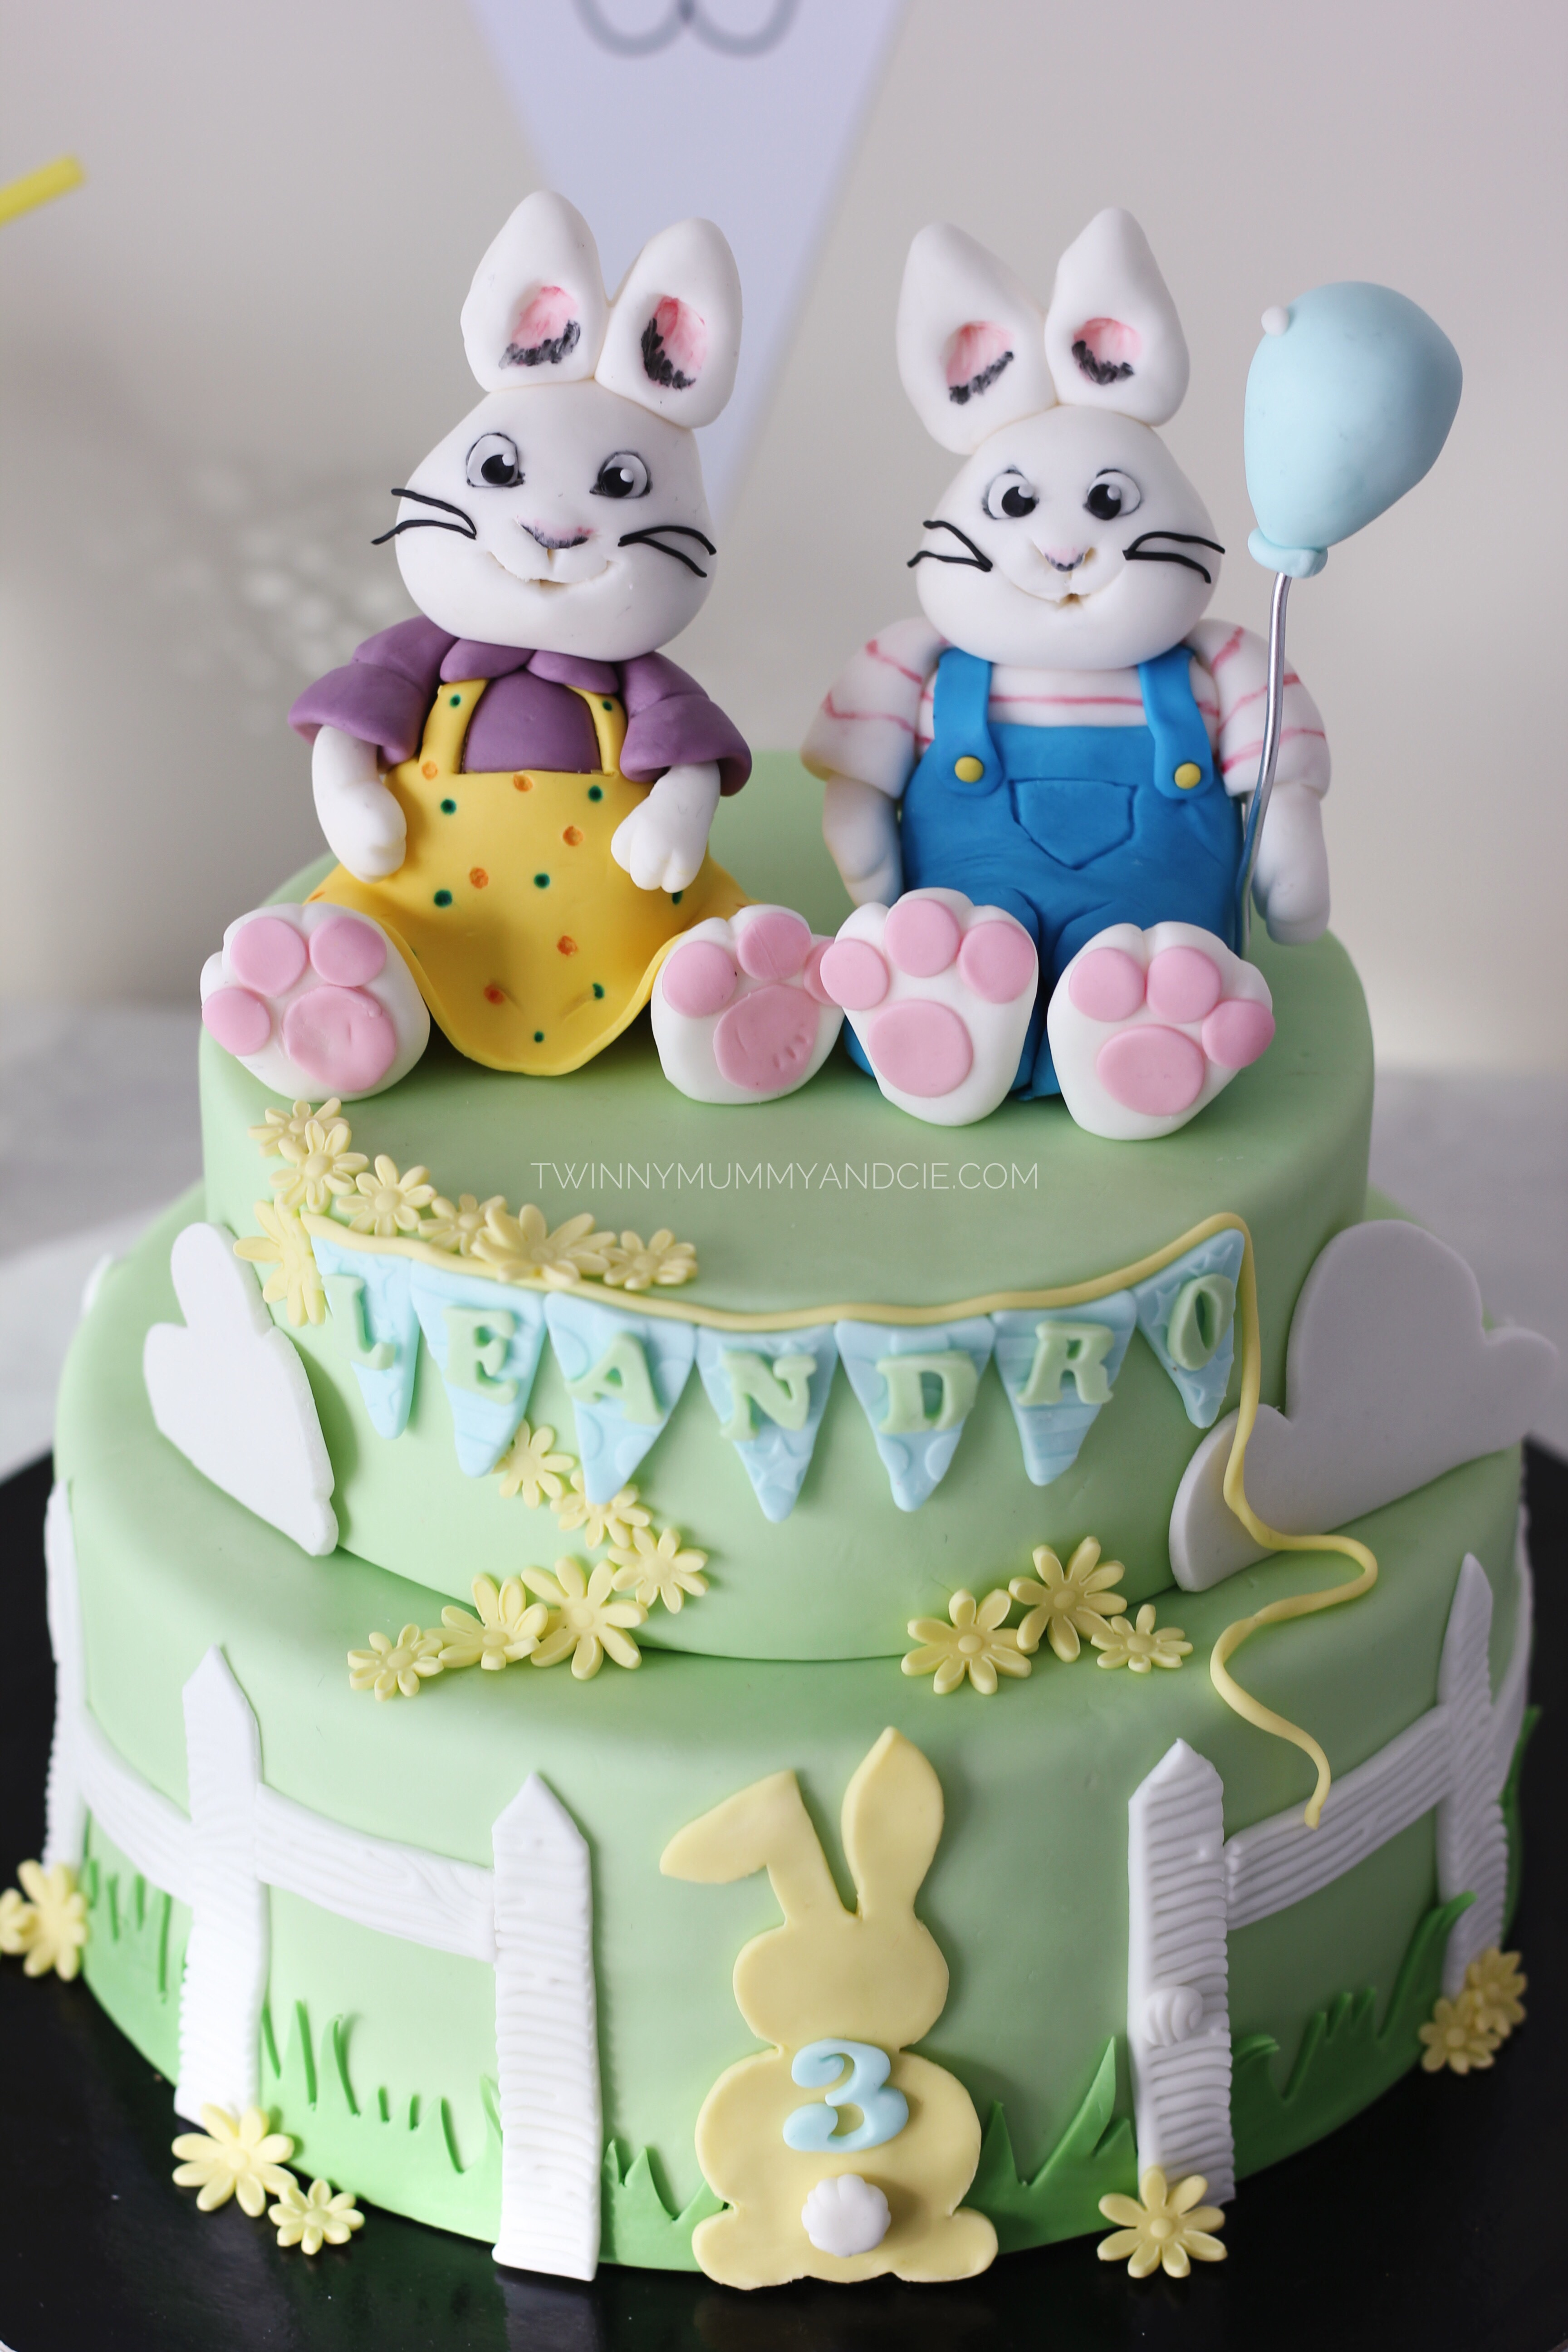 gateau anniversaire garcon max et ruby lapin 3 ans. Black Bedroom Furniture Sets. Home Design Ideas